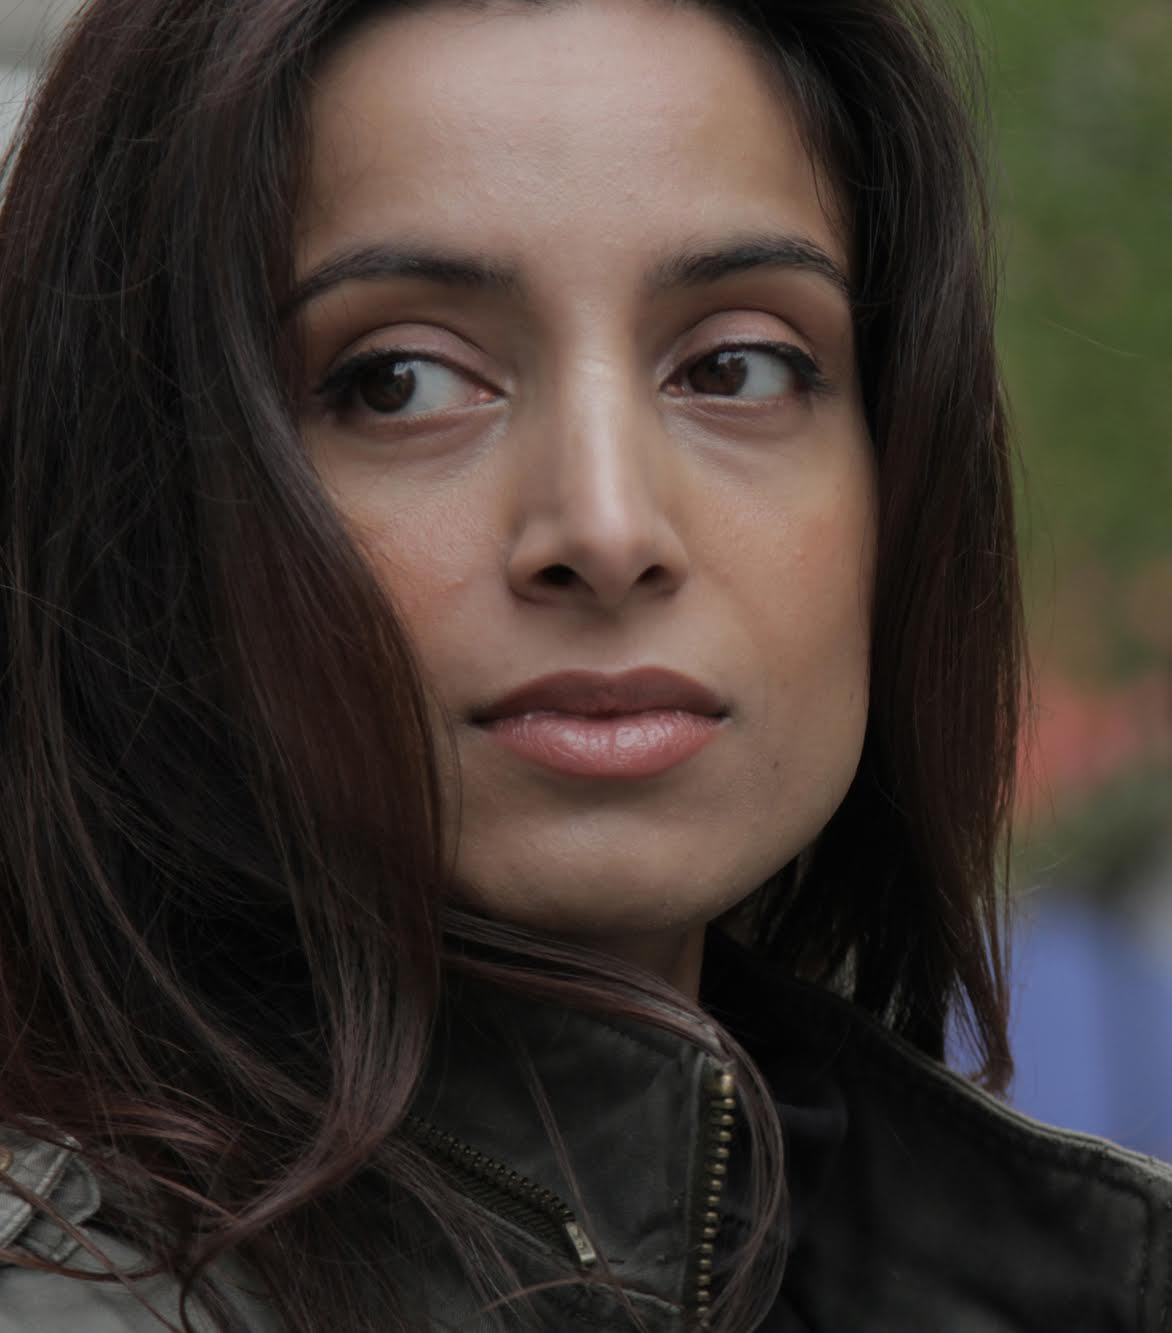 Peace Heroes: Deeyah Khan is Deconstructing Extremism with Documentary Film